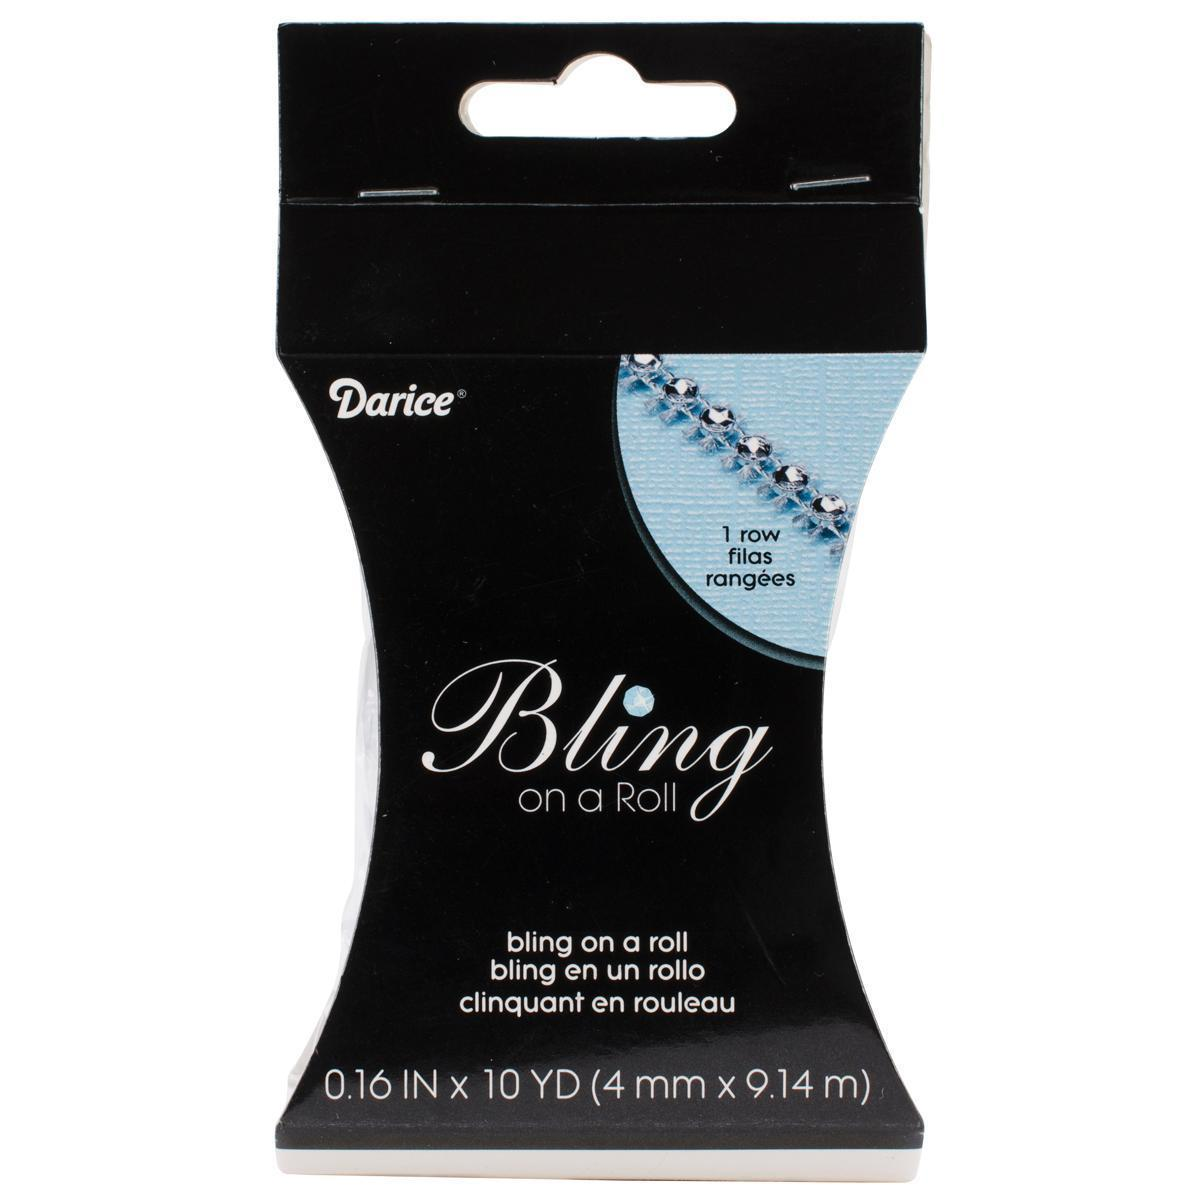 DARICE Bling On A Roll 4mm X 10yds - 1 Row, Silver (Stone)